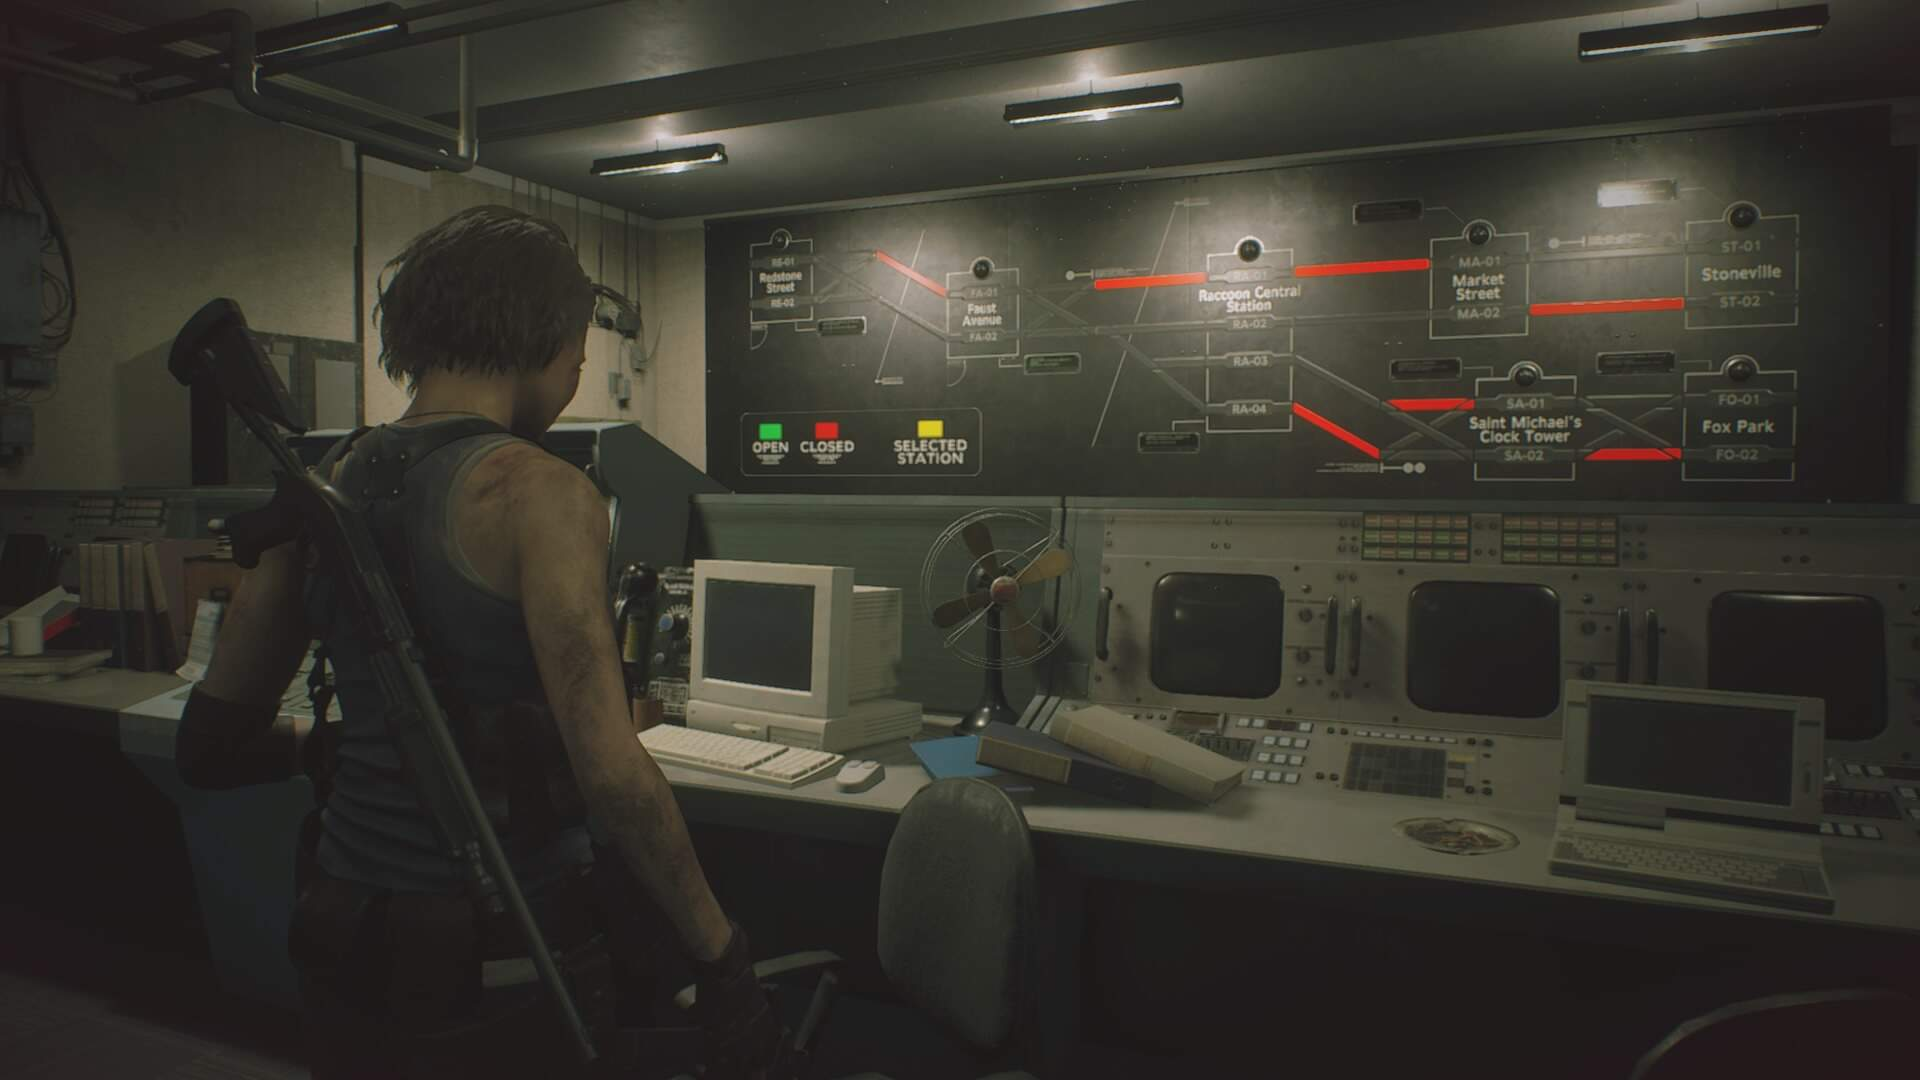 Resident Evil 3: How to Direct the Train Route in the Downtown Subway Office